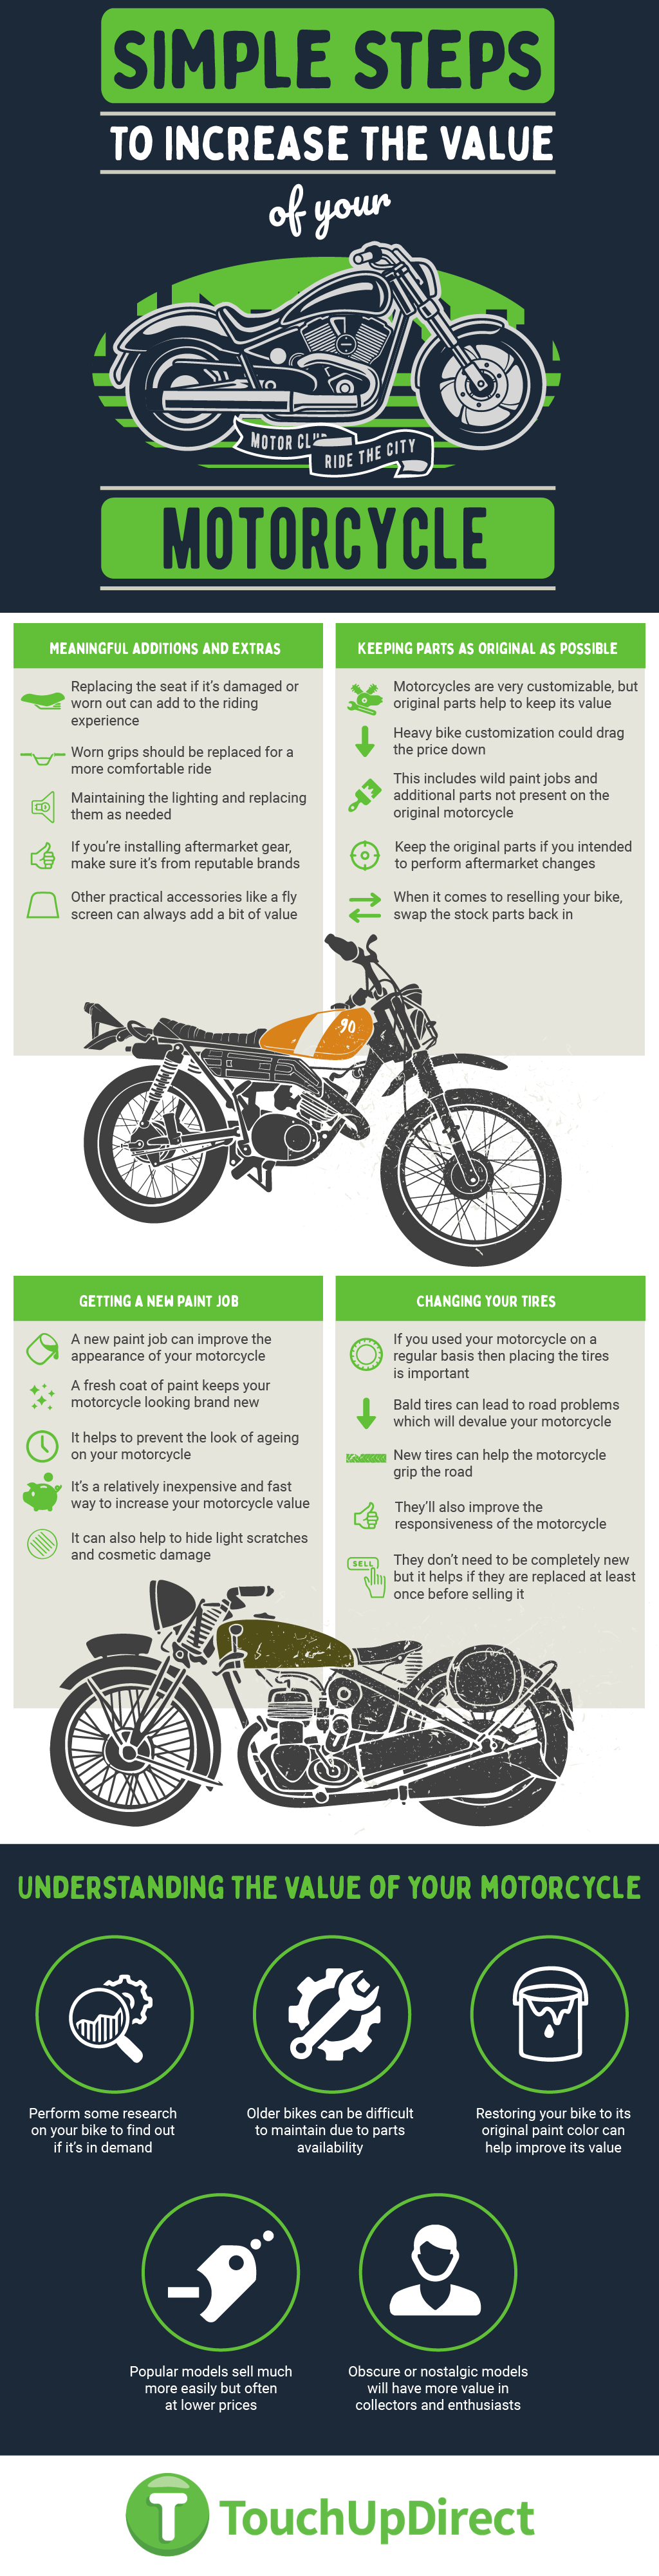 increase motorcycle value